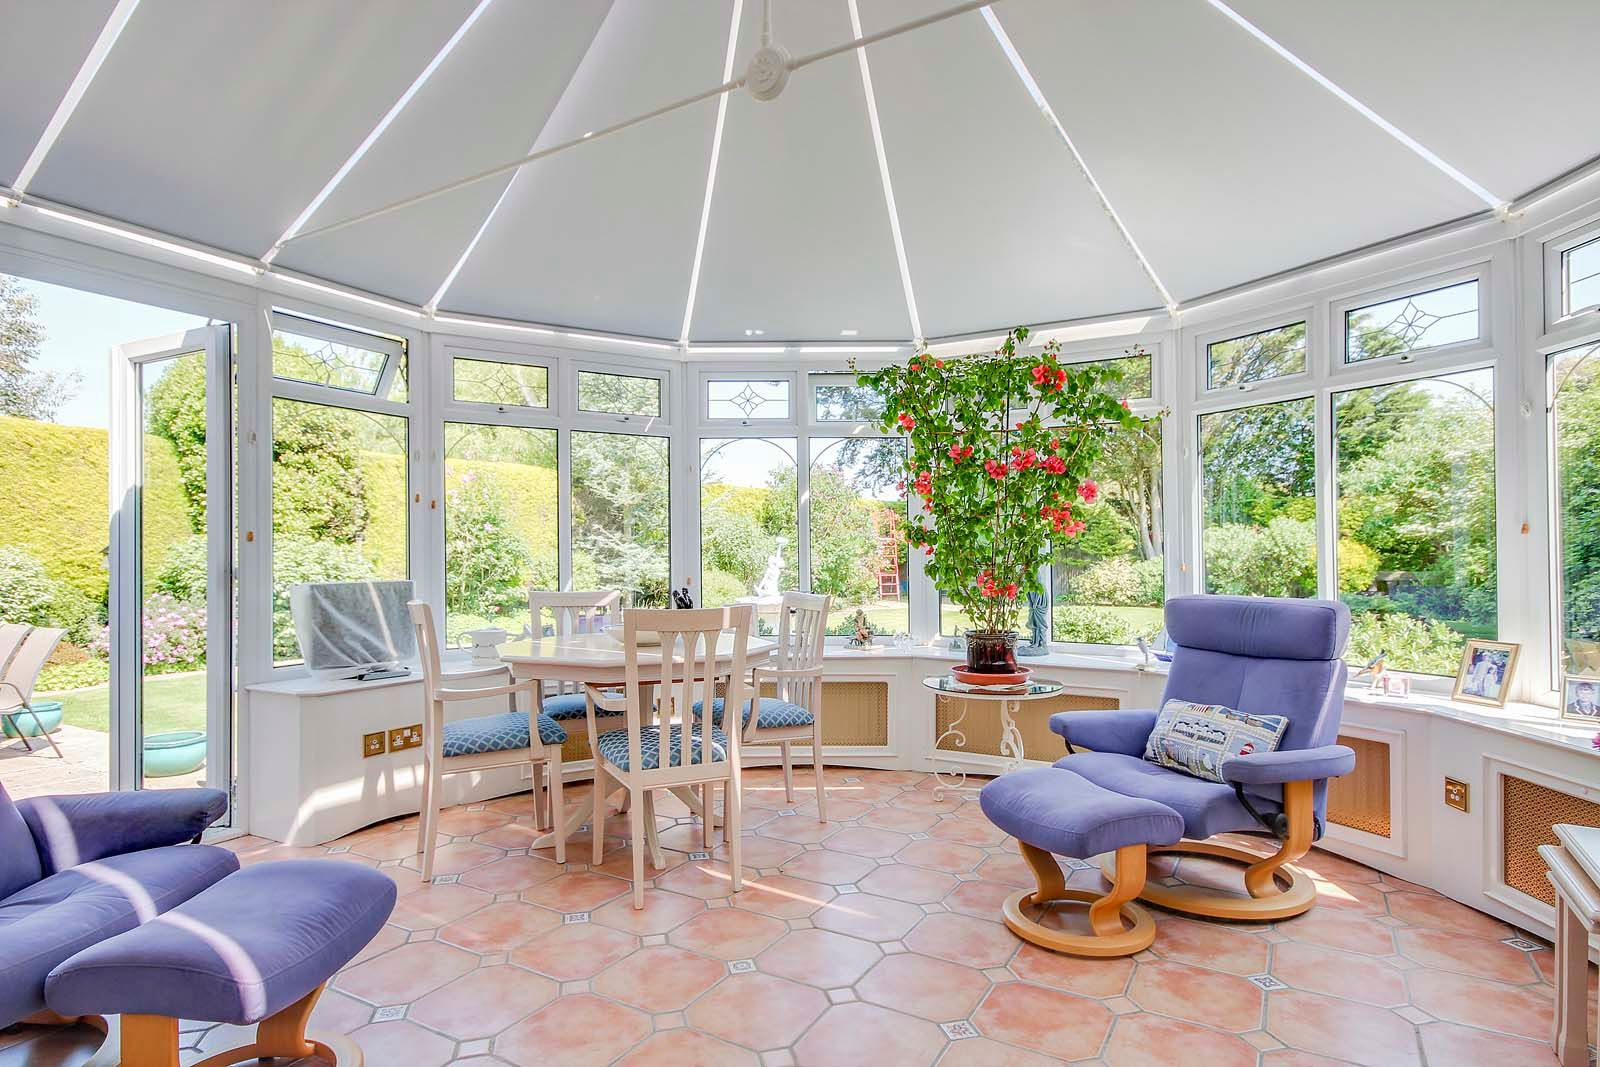 5 bed House for sale in The Willowhayne, East Preston - Conservatory (Property Image 2)